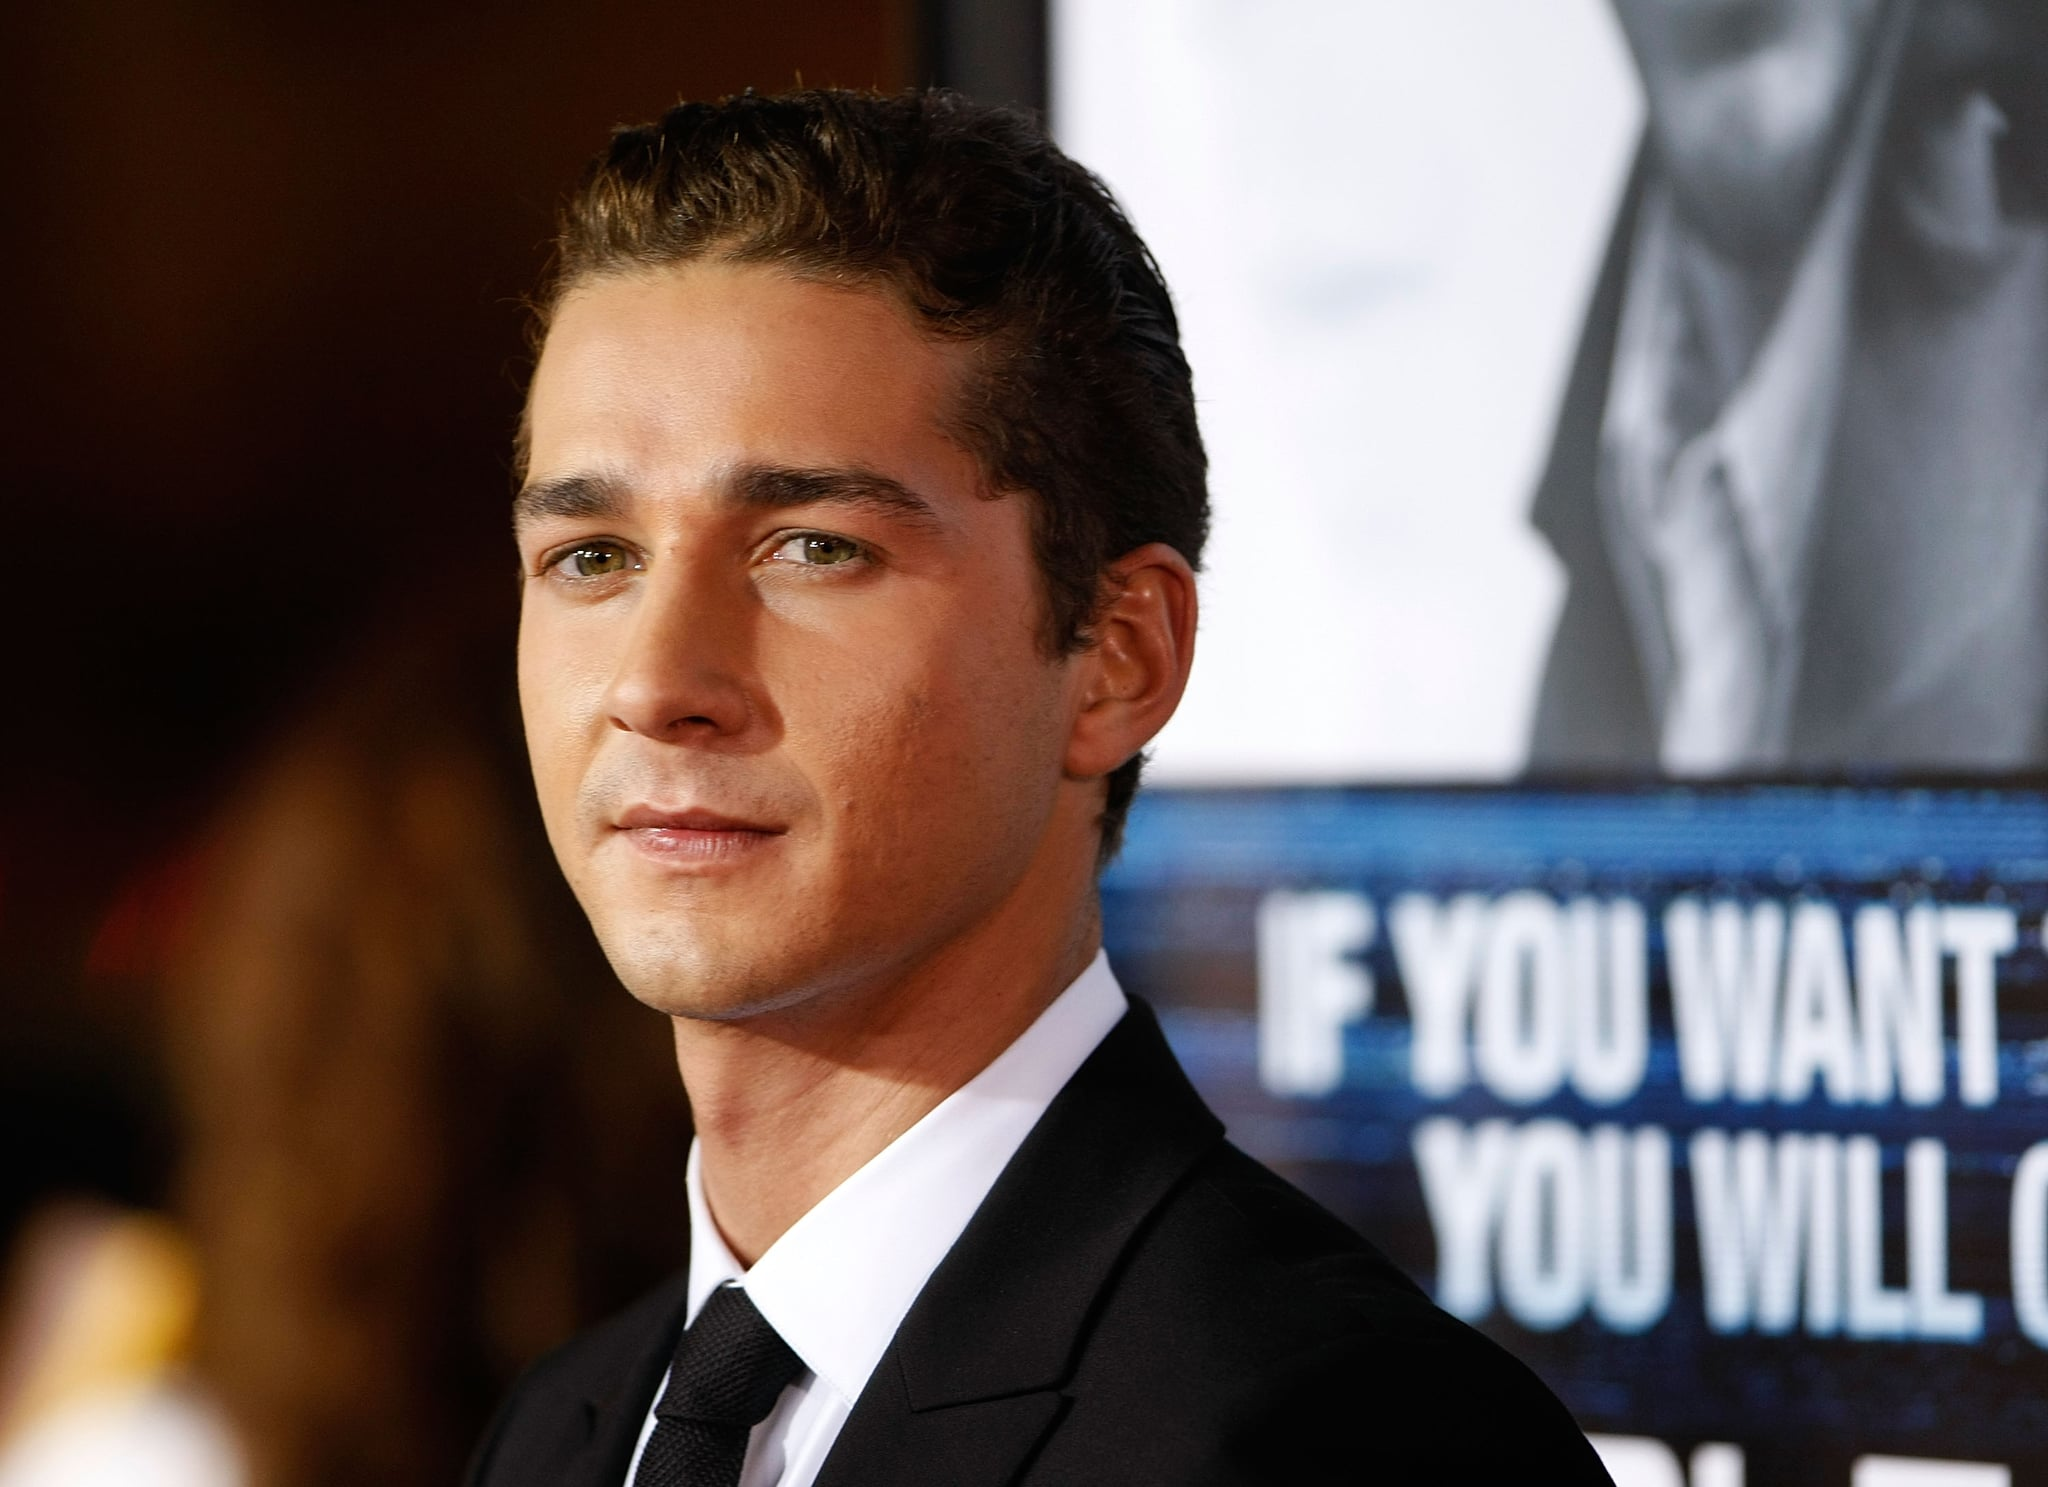 Shia gave off a sexy stare at the LA premiere of Eagle Eye back in September 2008.